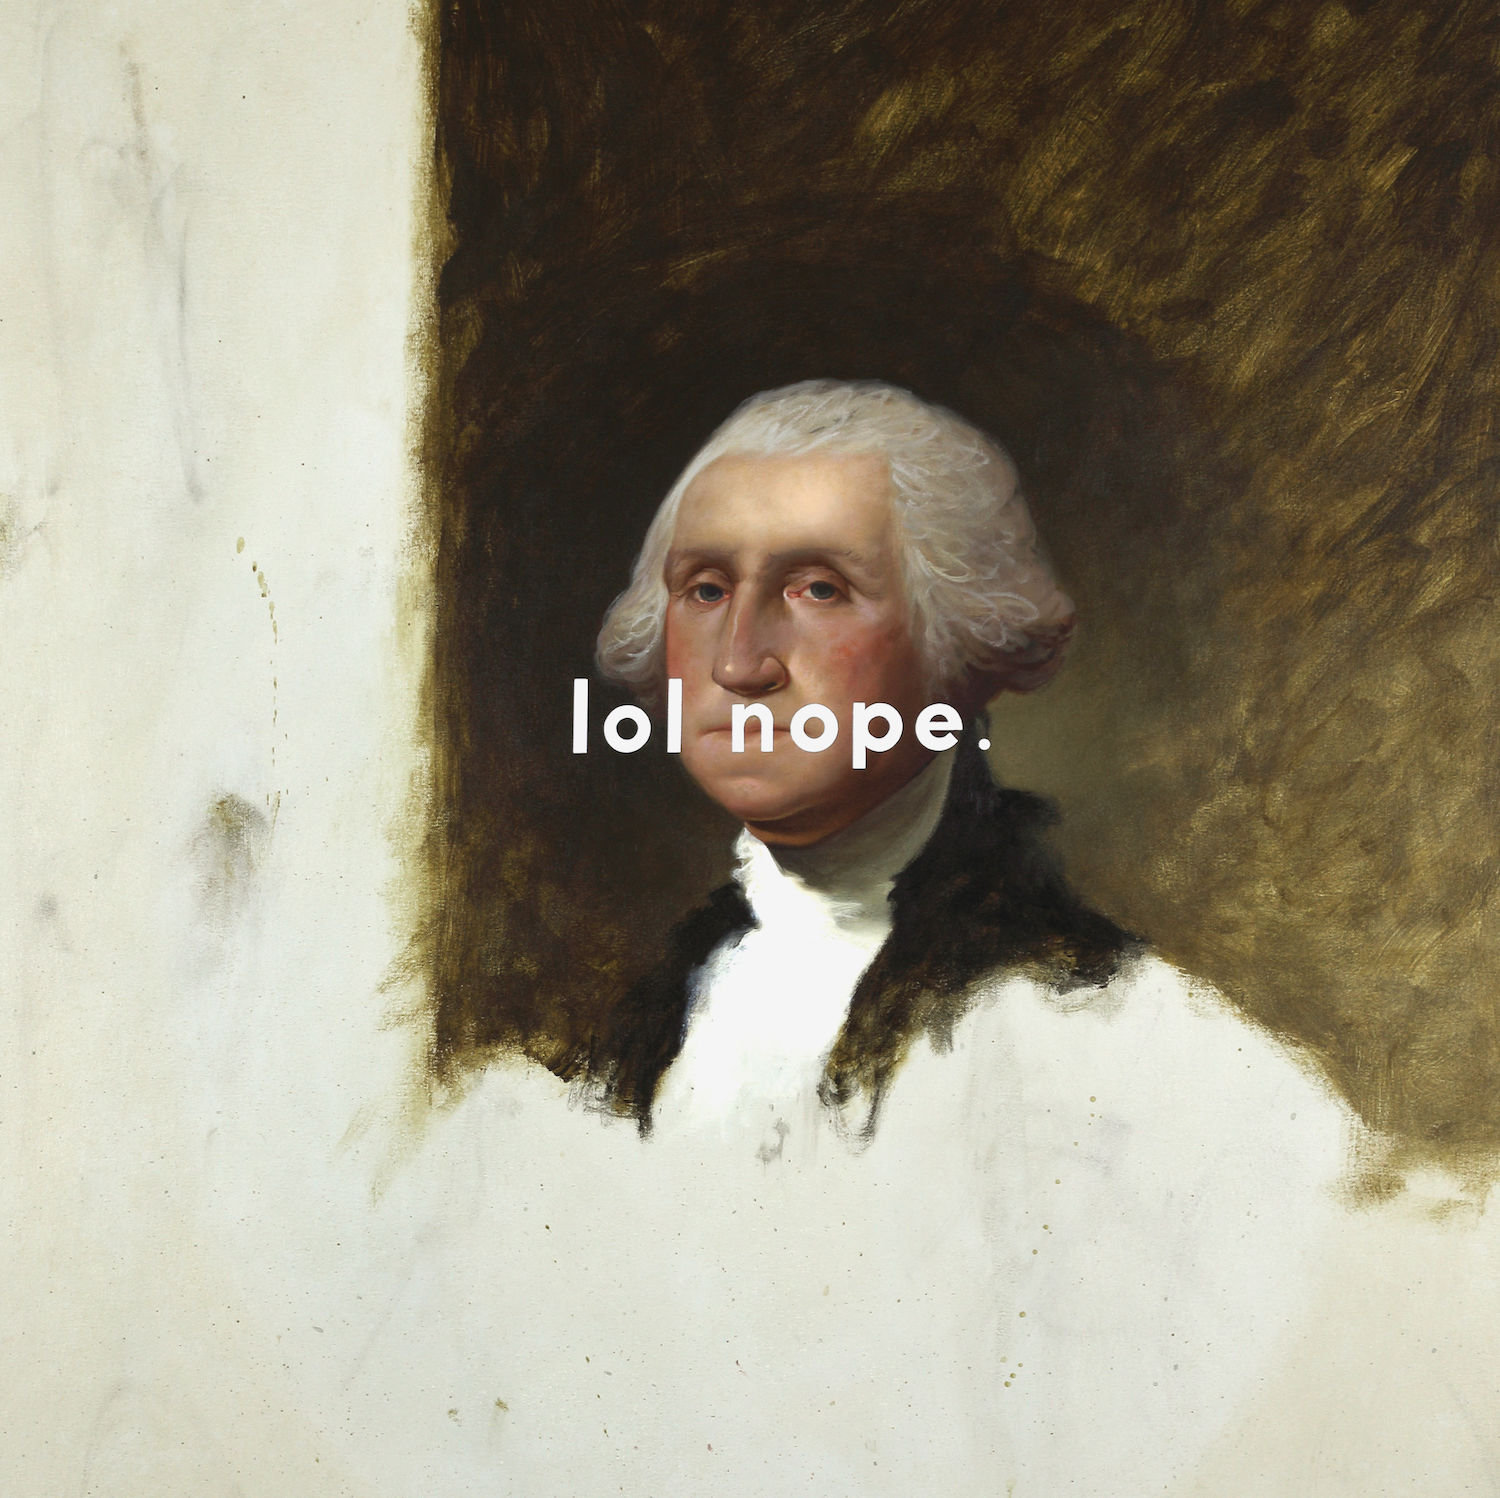 Huckins george washington  the athenaeum portrait  laughing out loud nope hires ij2vlq